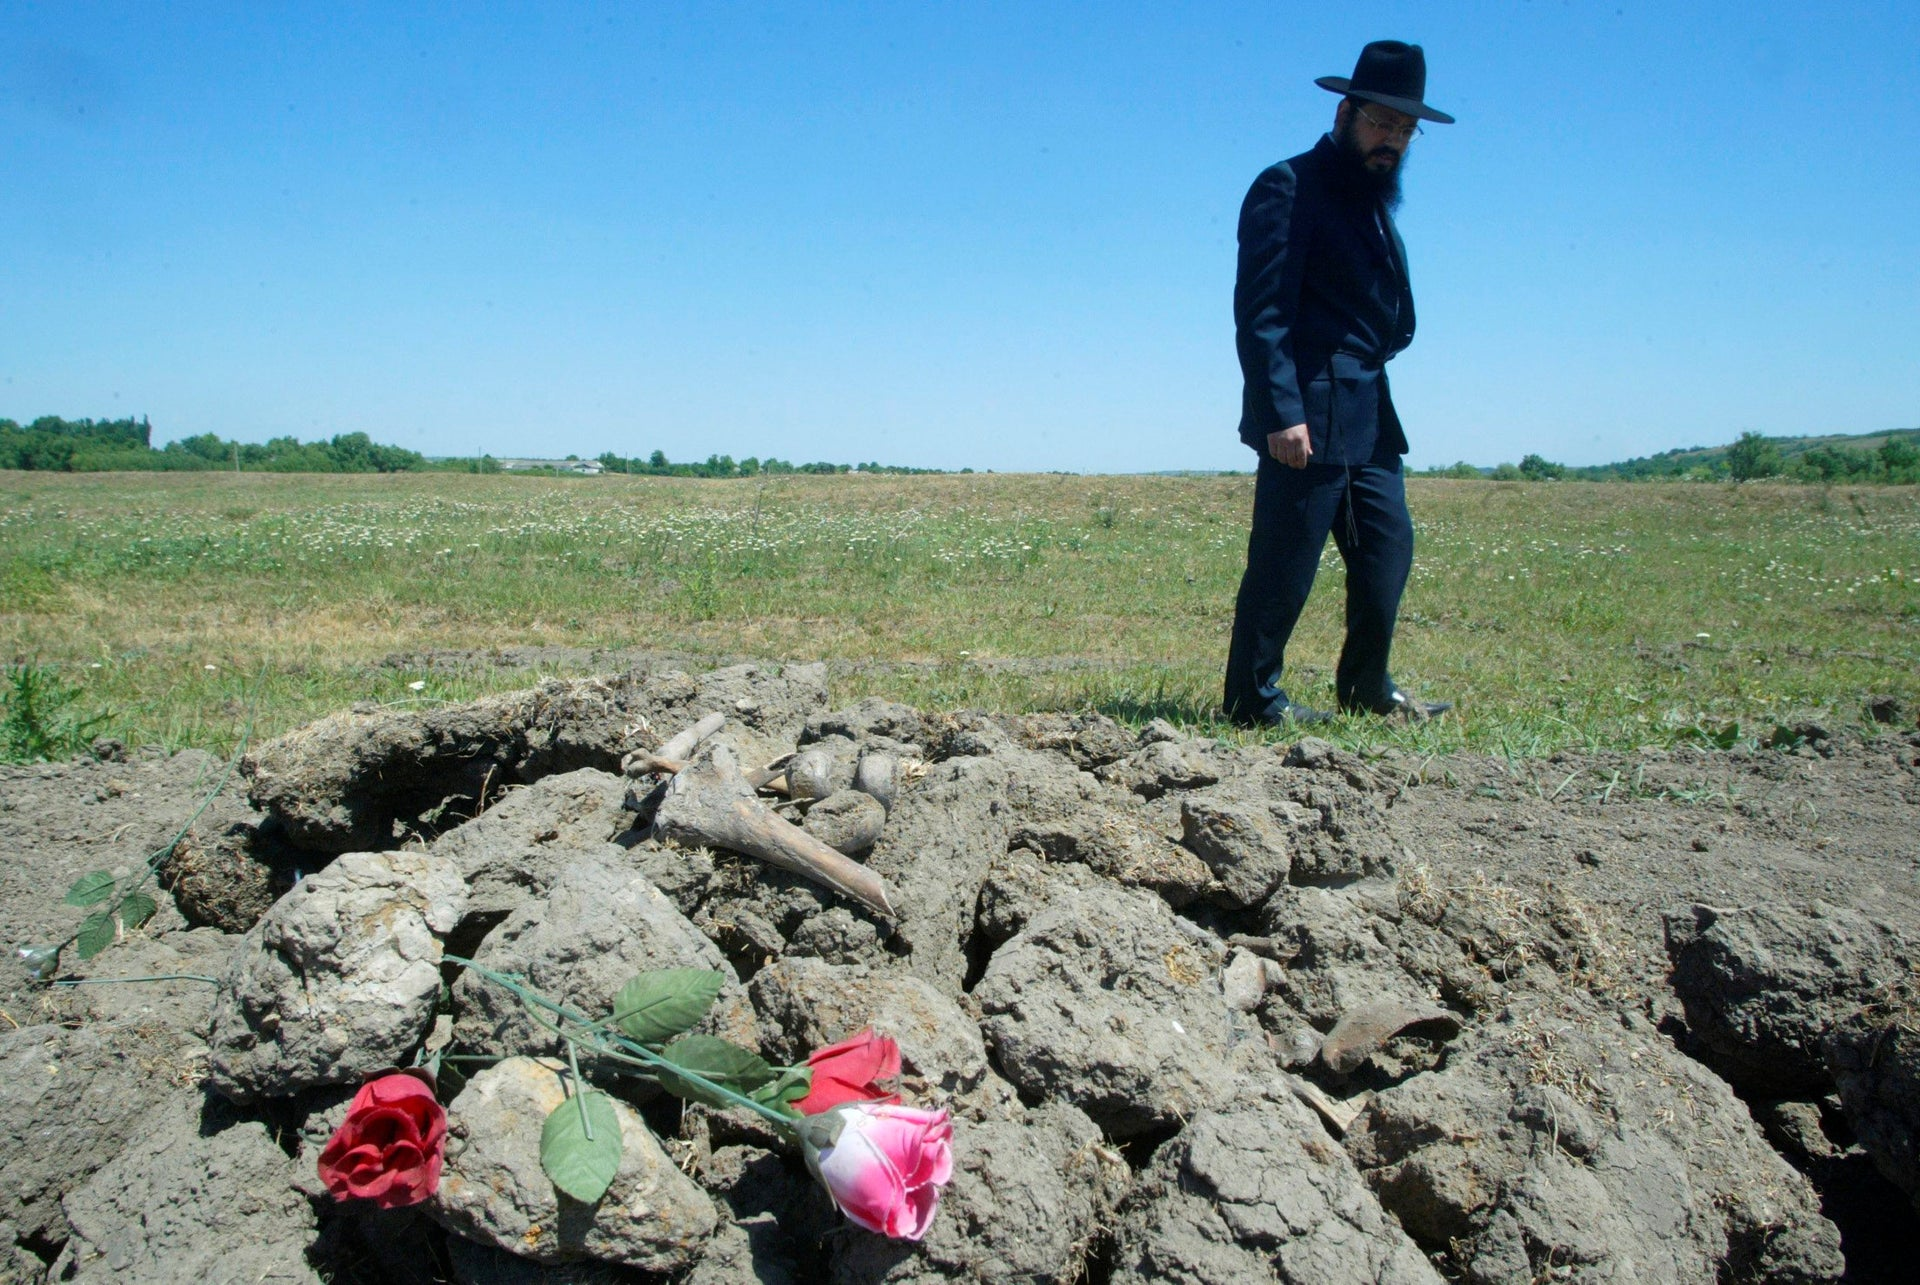 FILE PHOTO: A mass grave of Jews slaughtered in Ukraine during World War II